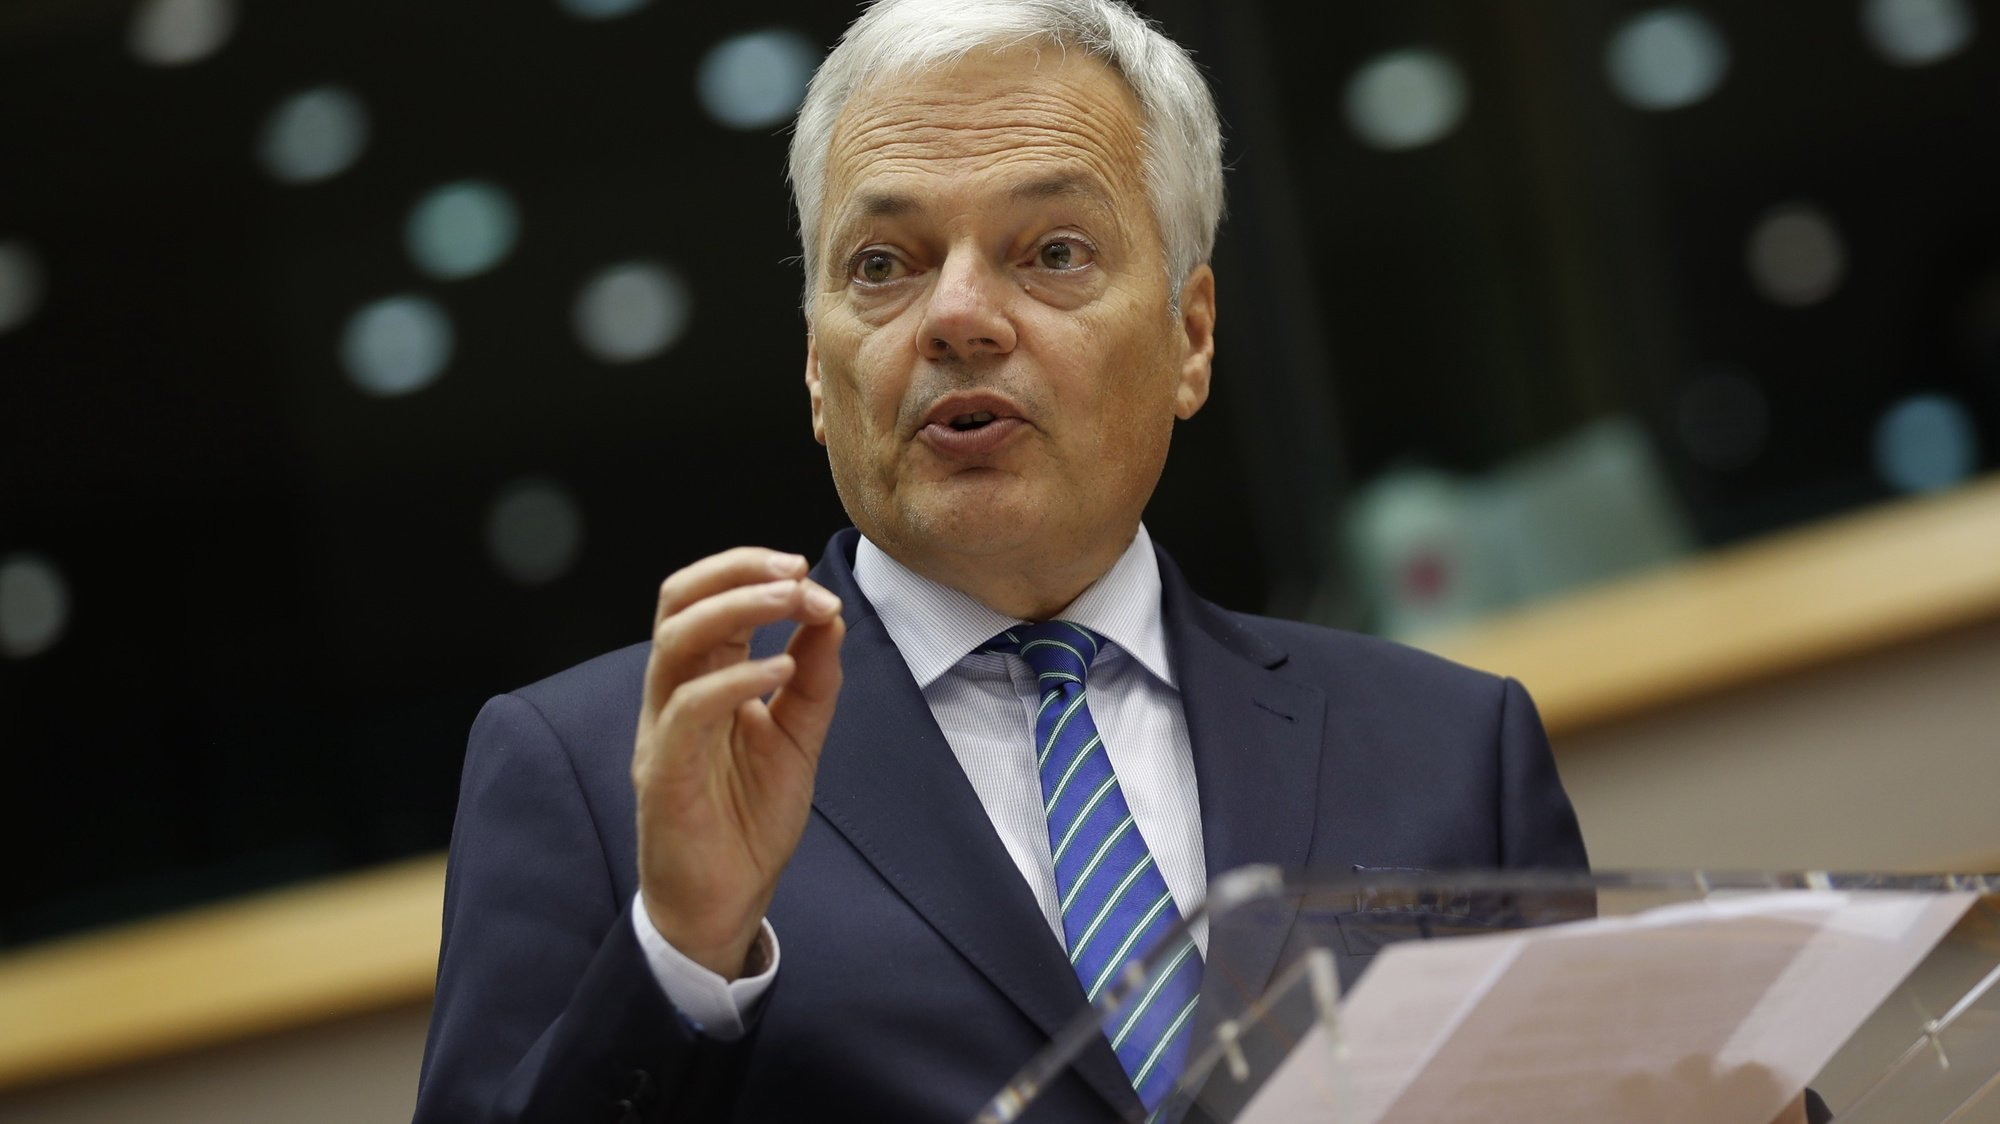 epa08722378 European Commissioner for Justice Didier Reynders addresses European lawmakers on the Establishment of an EU Mechanism on Democracy, the Rule of Law and Fundamental Rights during a plenary session at the European Parliament in Brussels, Belgium, 05 October 2020.  EPA/FRANCISCO SECO / POOL